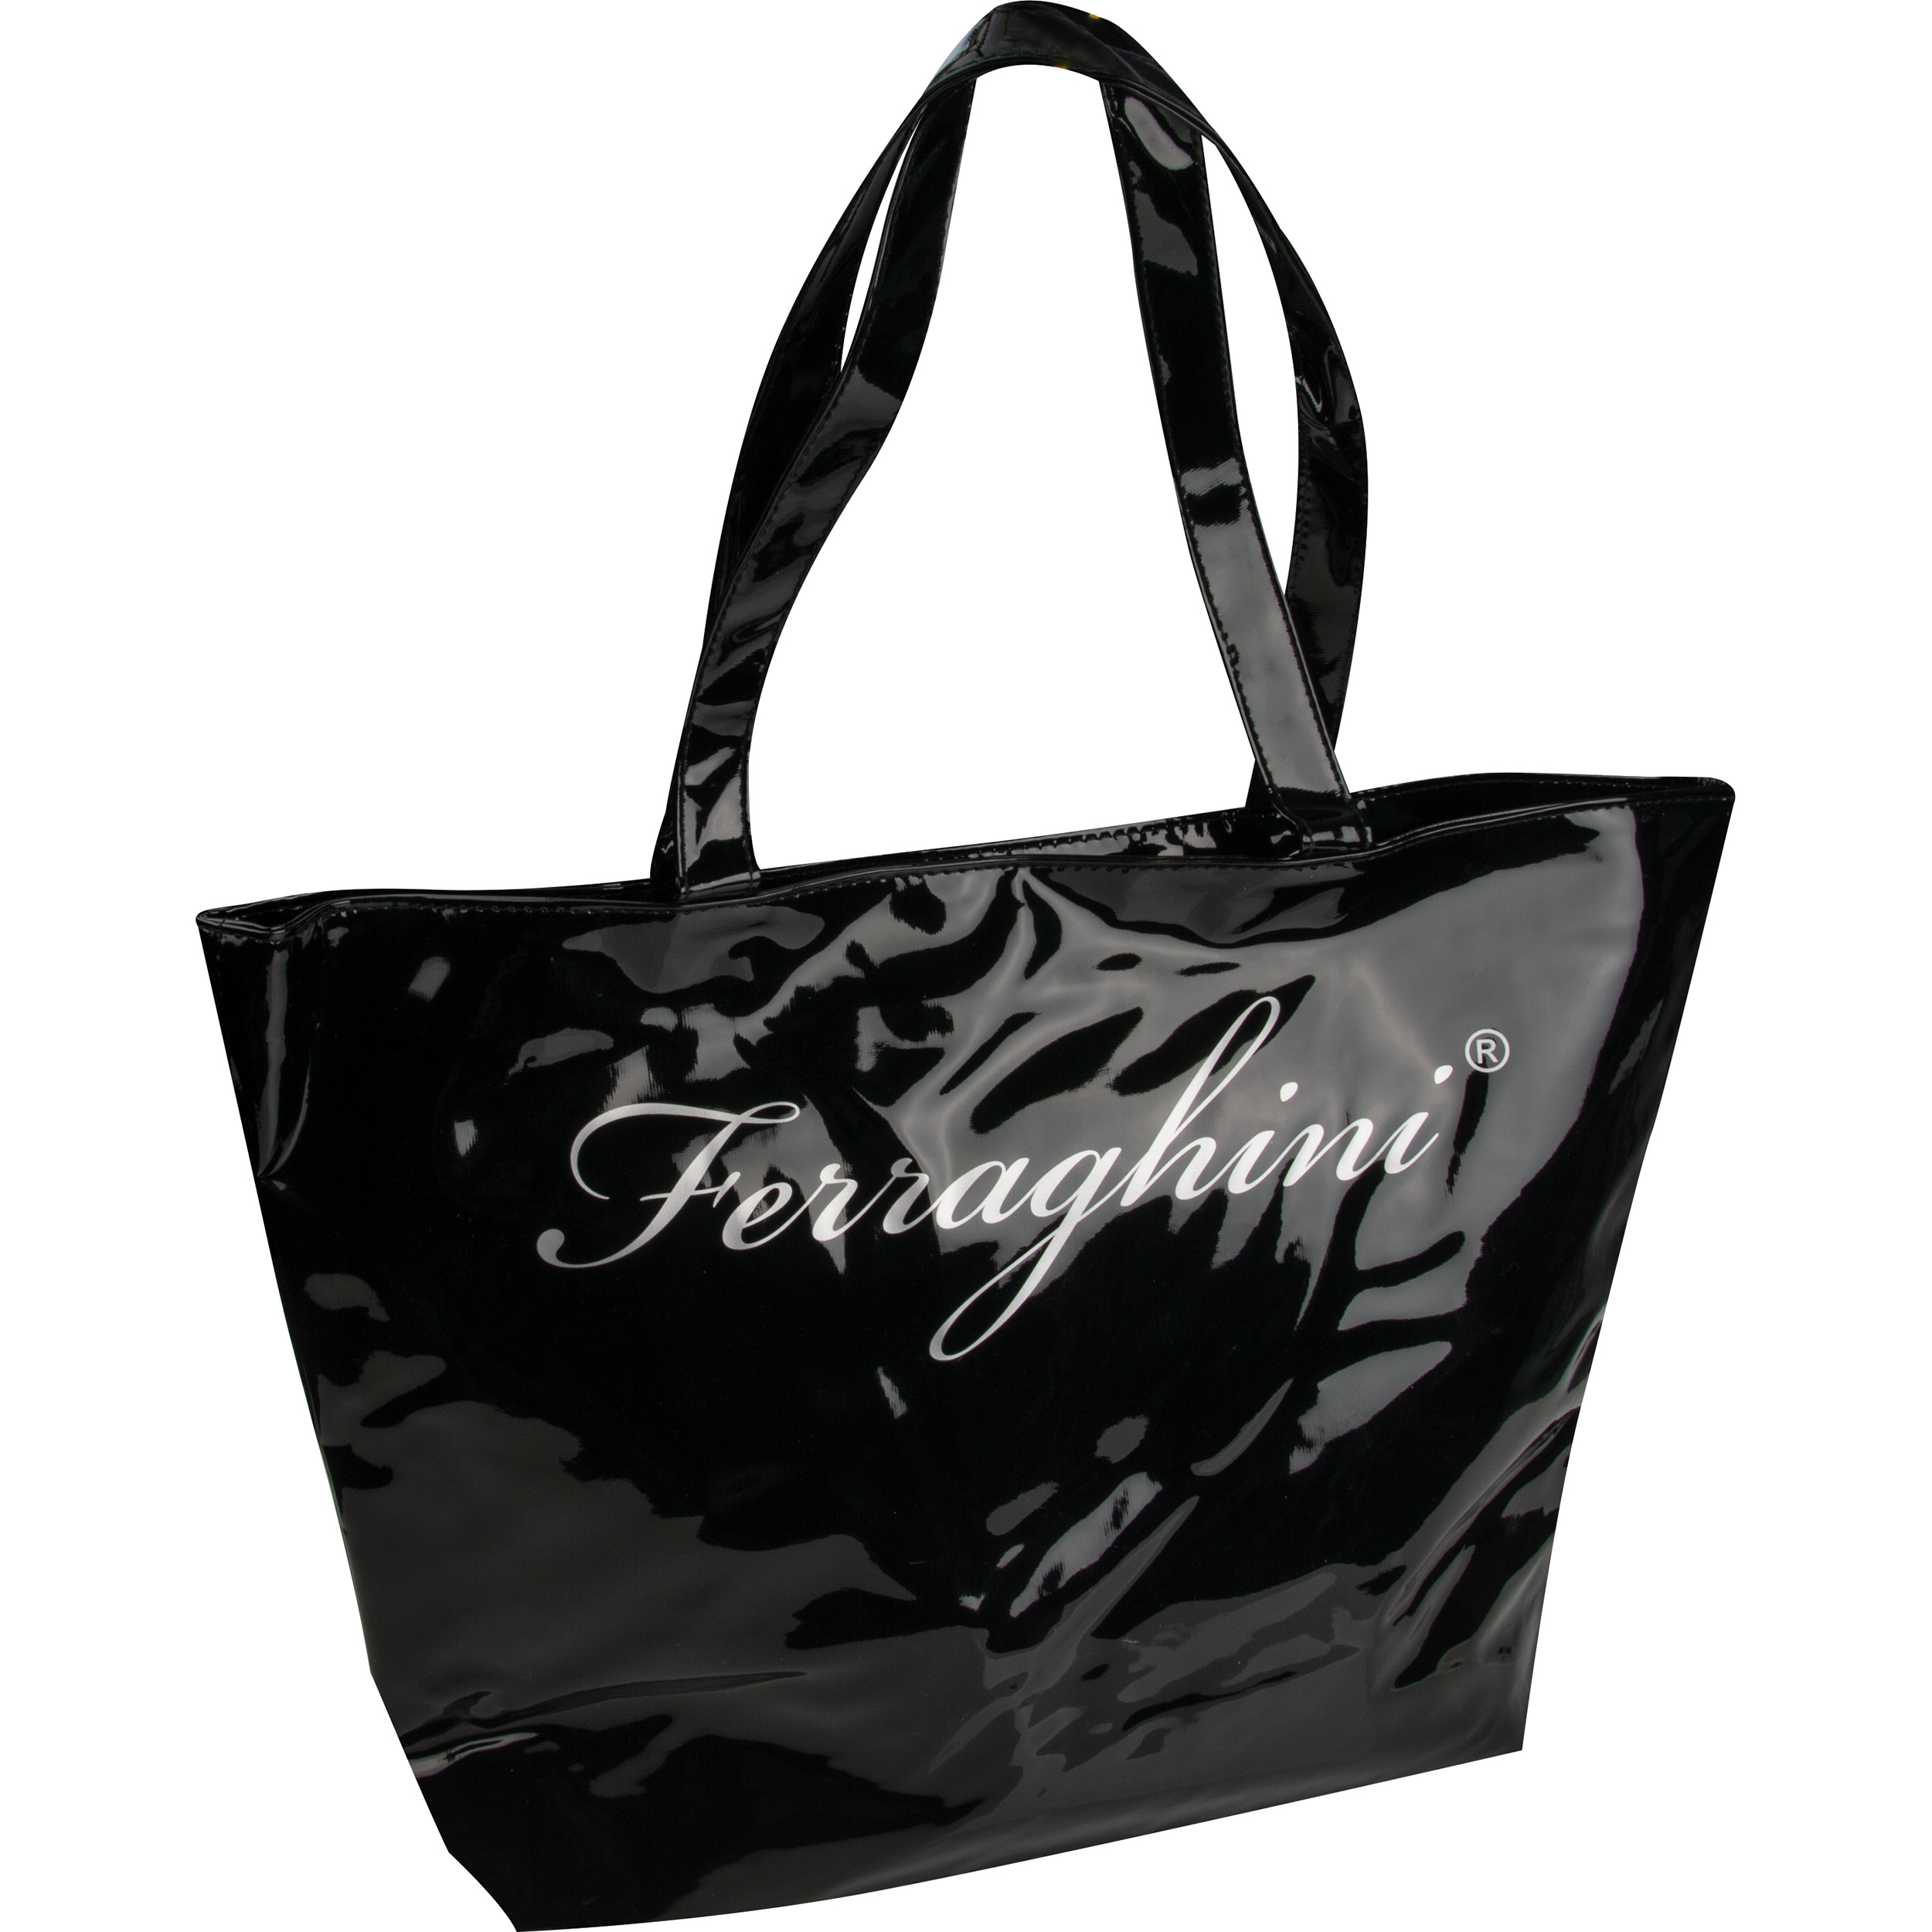 Ferraghini exhibition bag